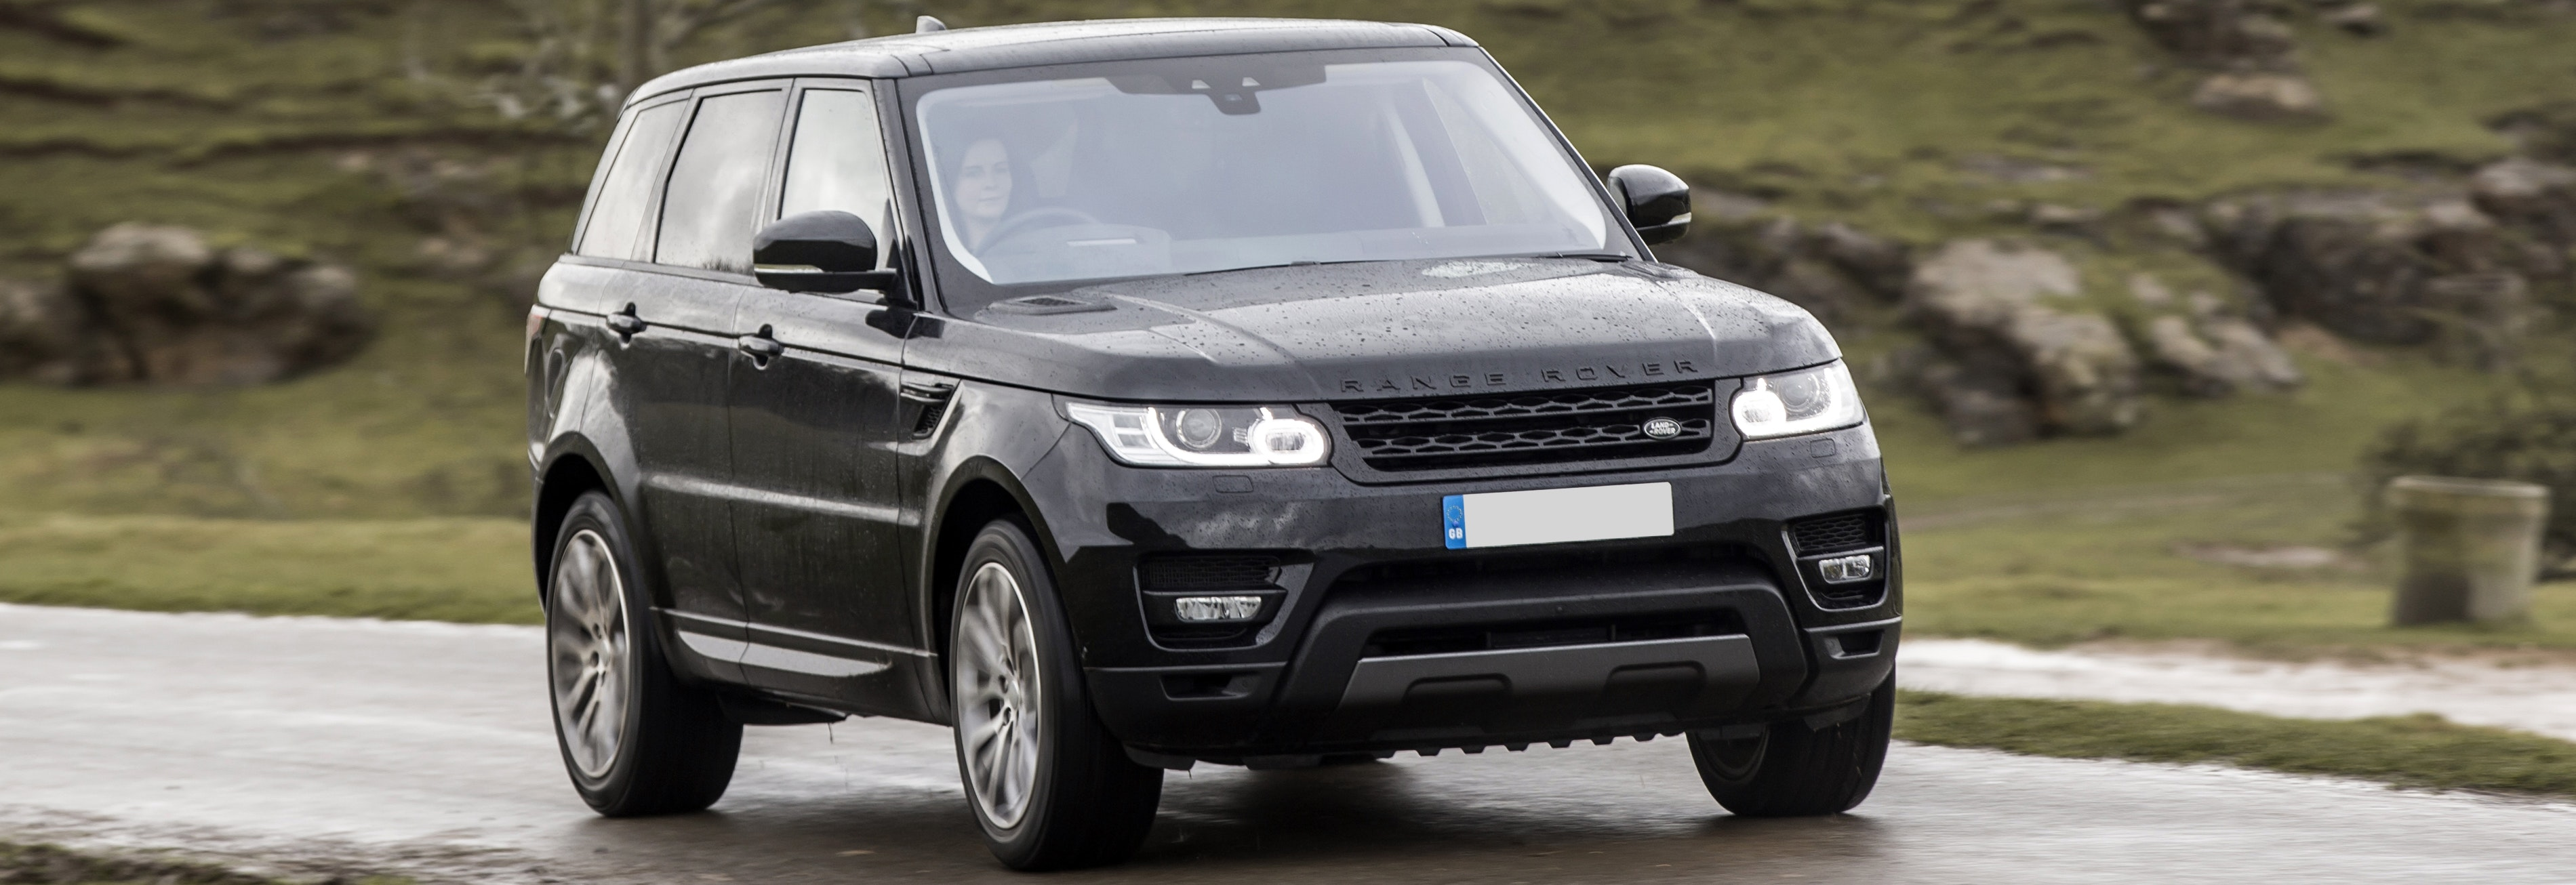 Black Range Rover Sport driving, viewed from the front